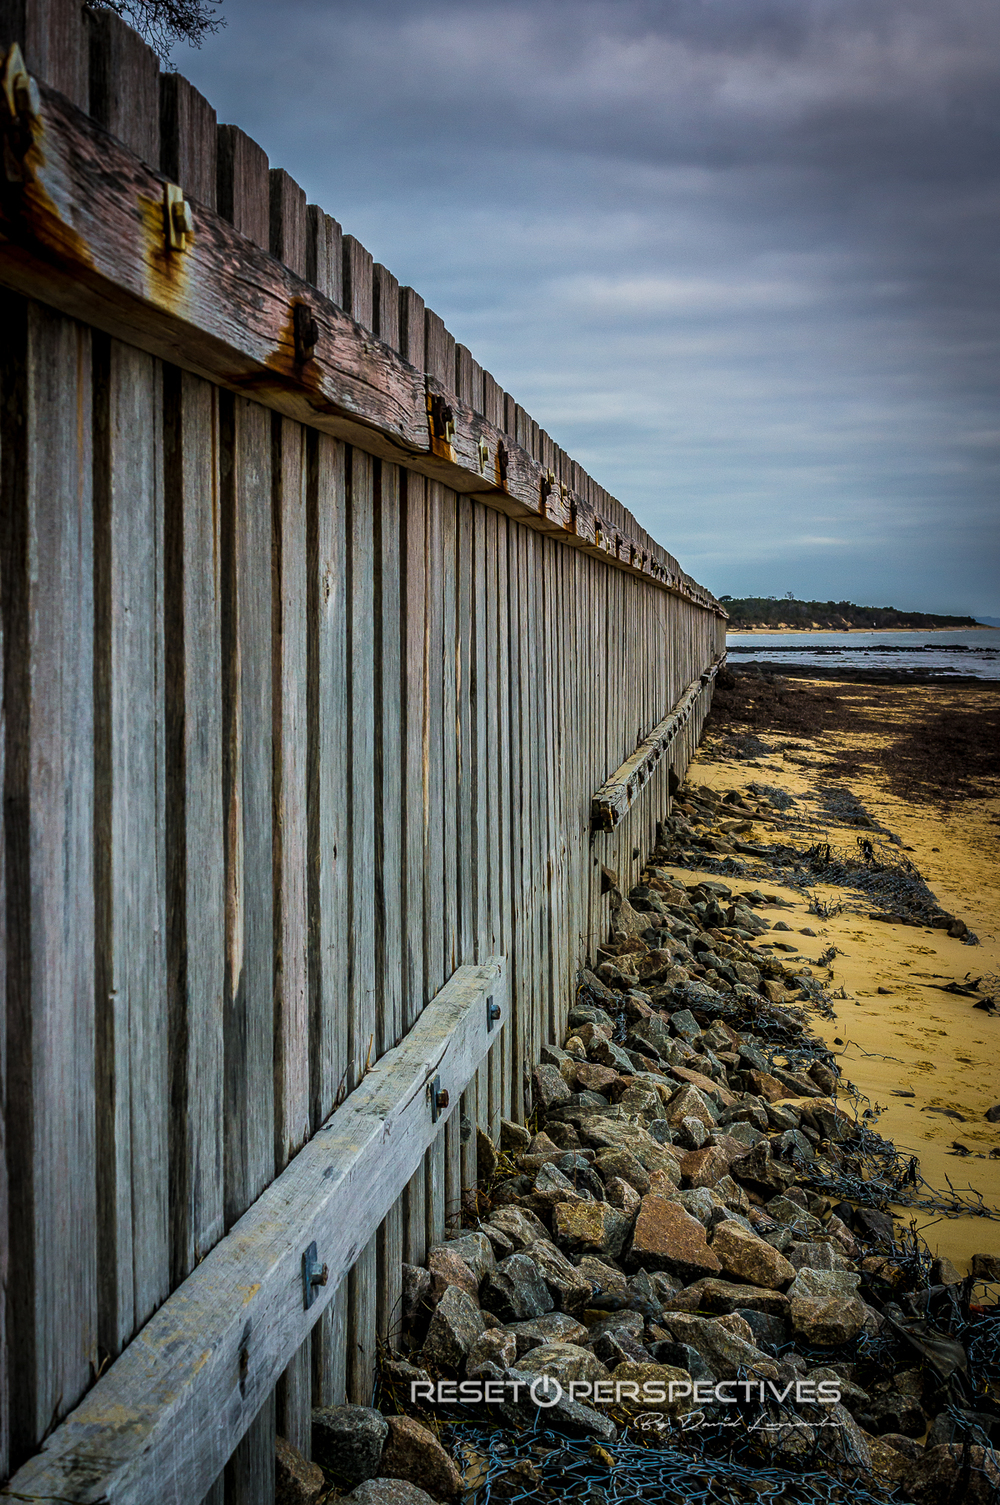 Sea Wall at Somers Beach, Victoria